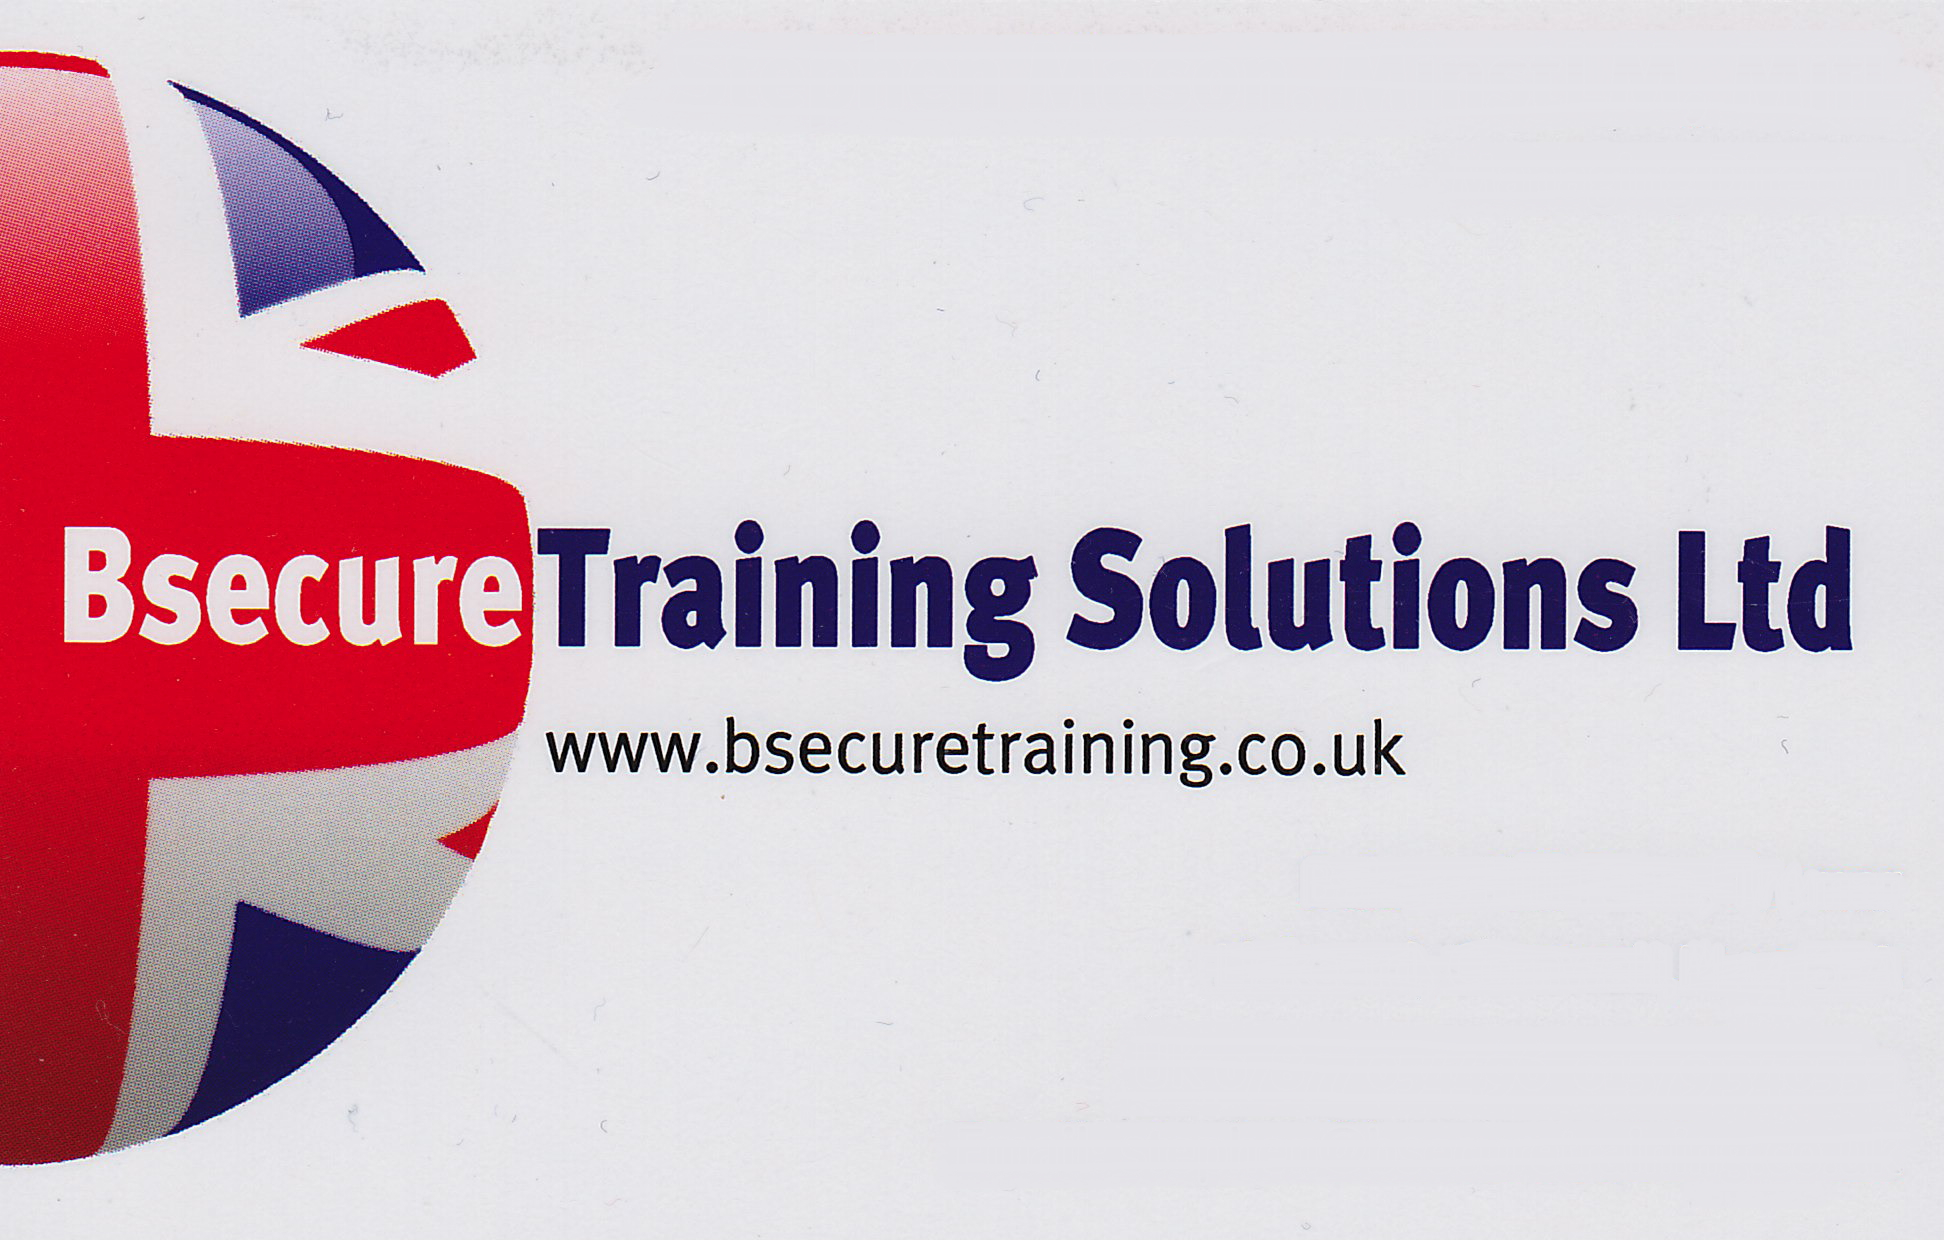 Bsecure Training Solutions Ltd